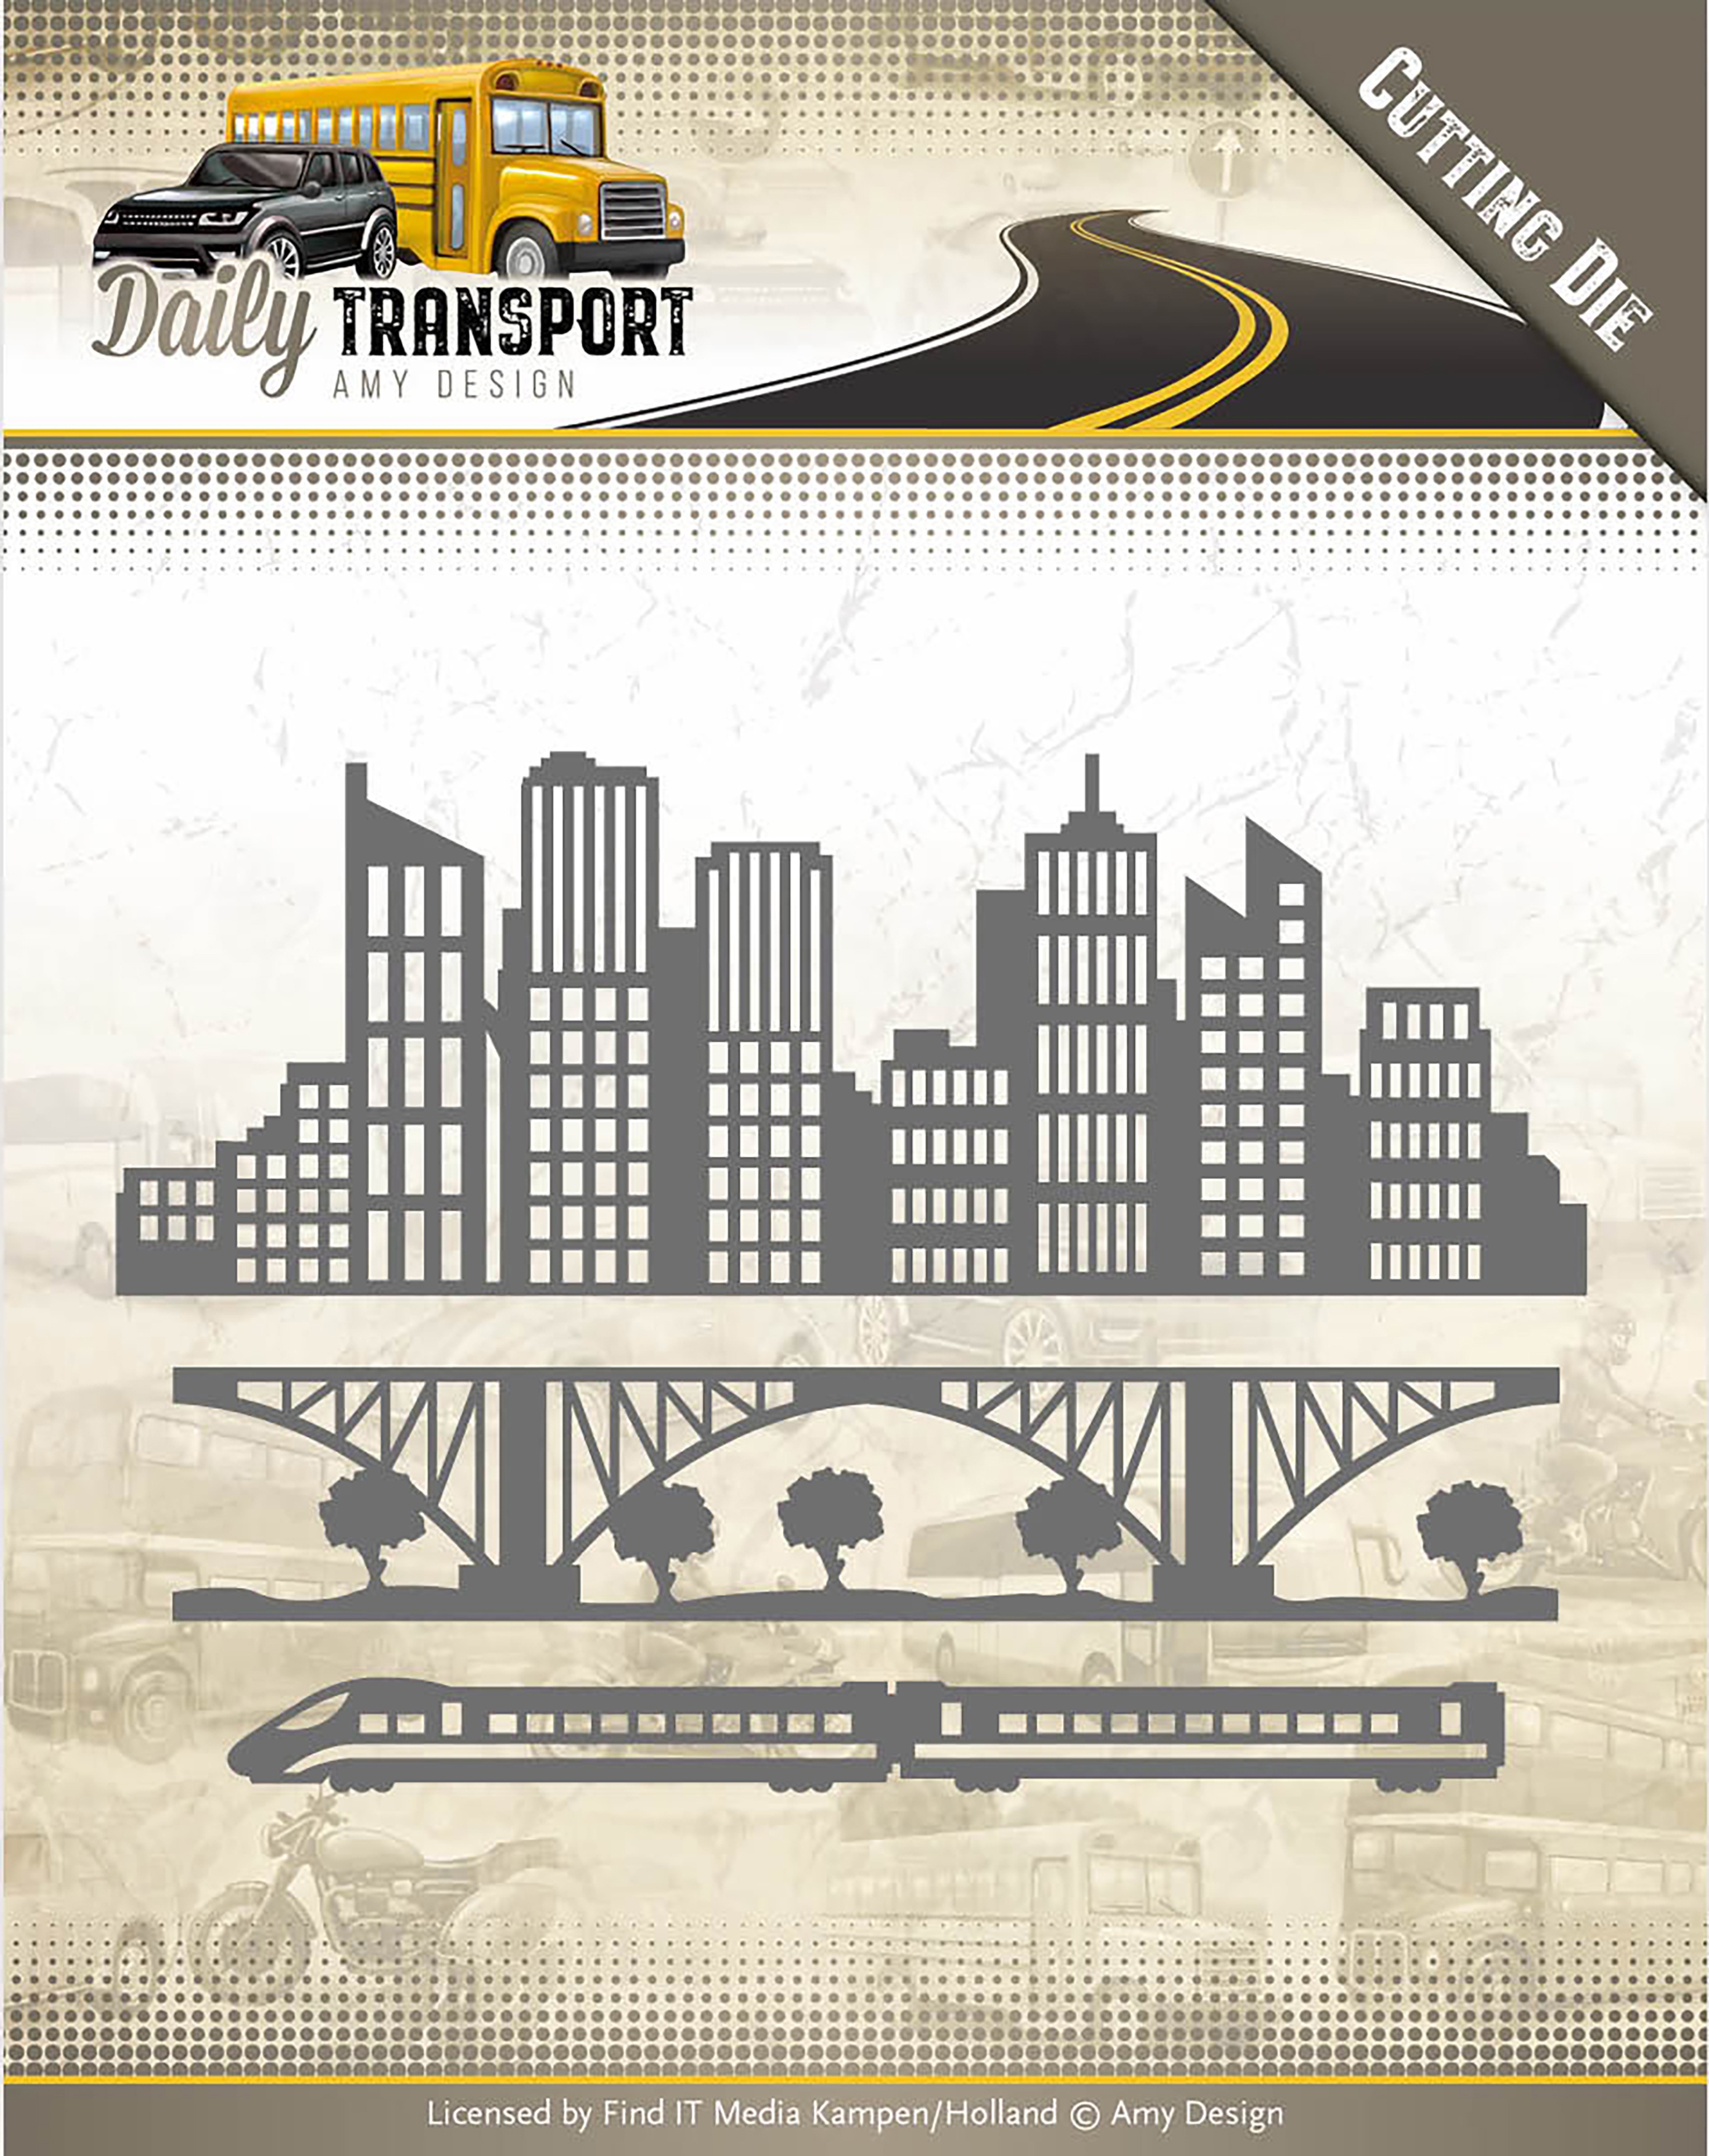 In The City - Find It Trading Amy Design Daily Transport Die